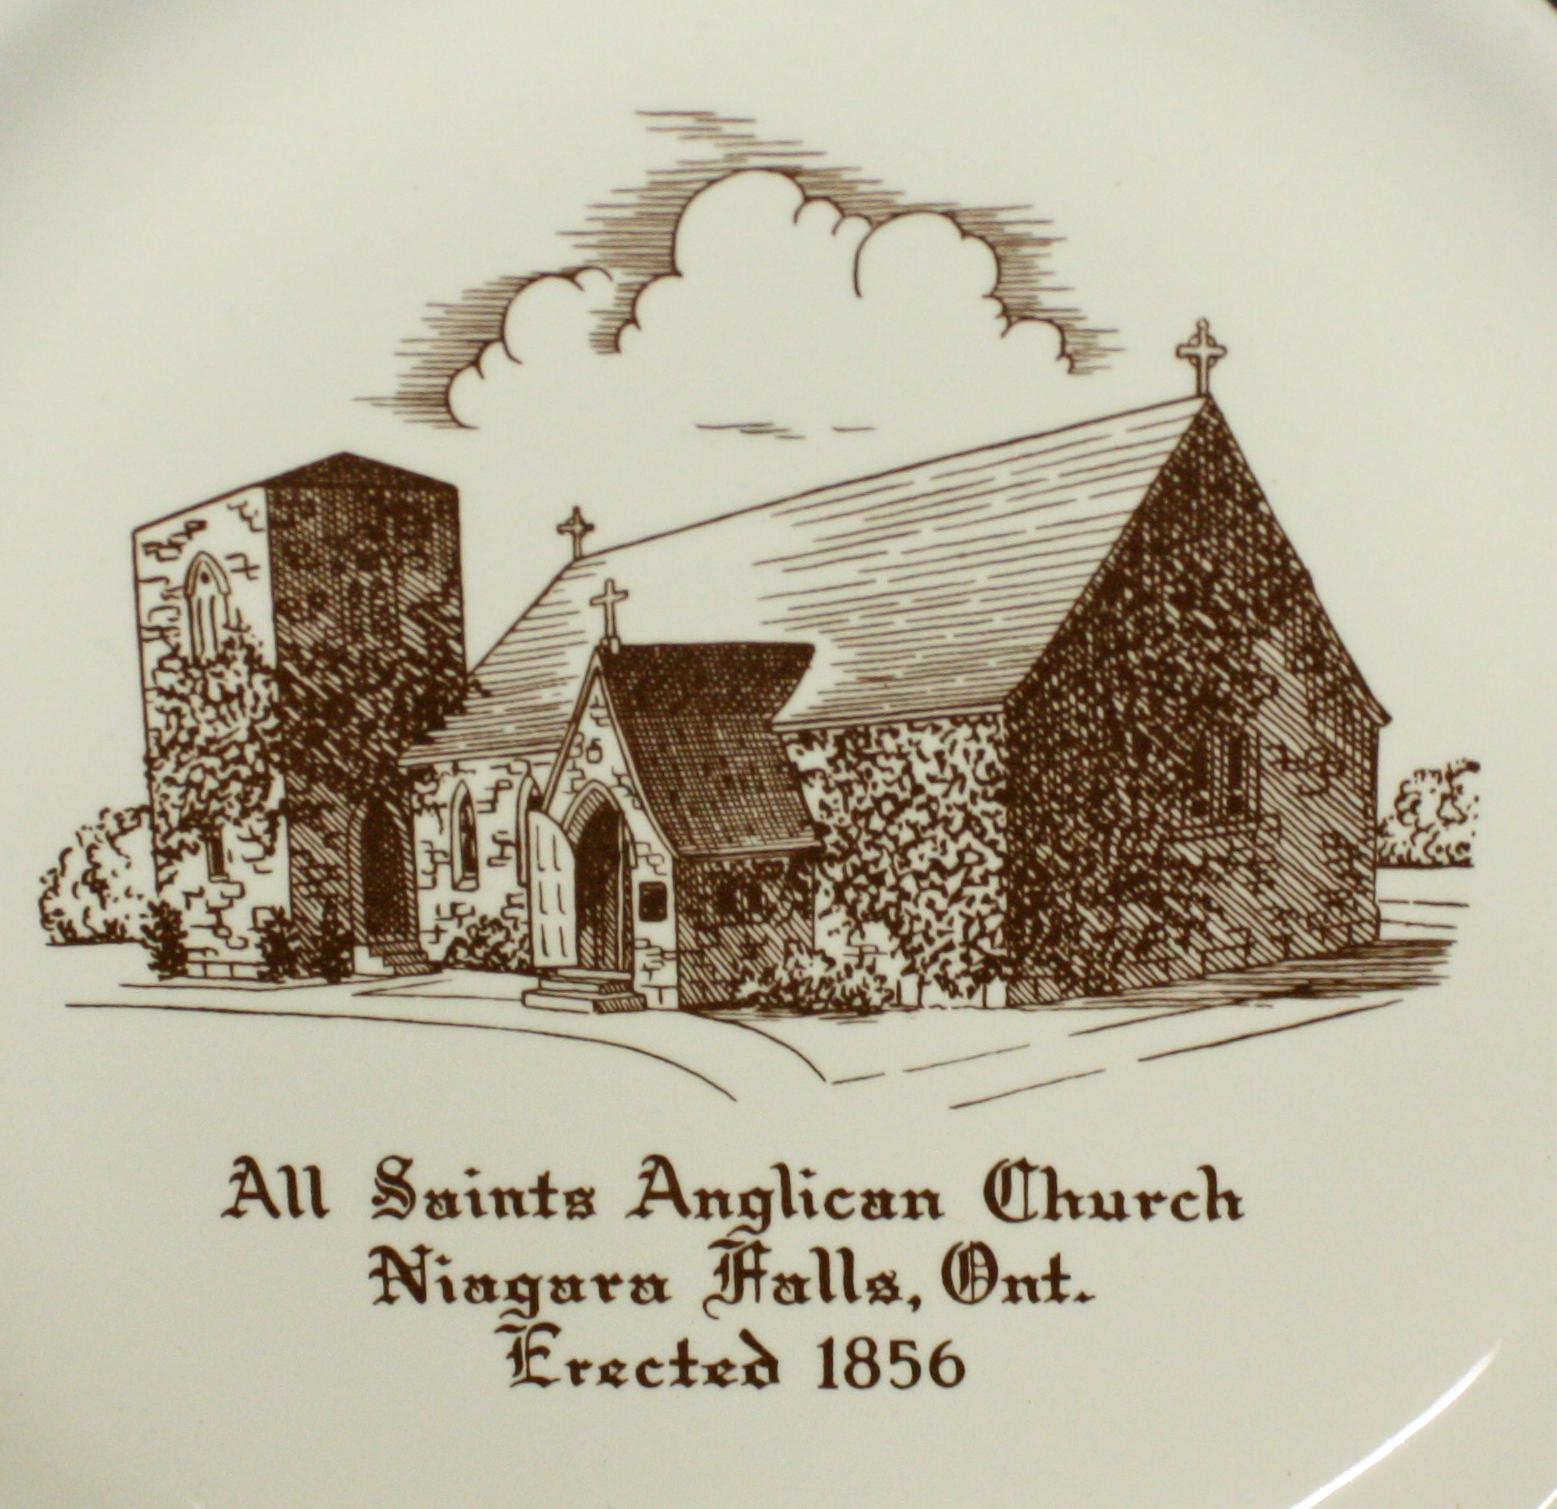 Centre of commemorative plate showing church building